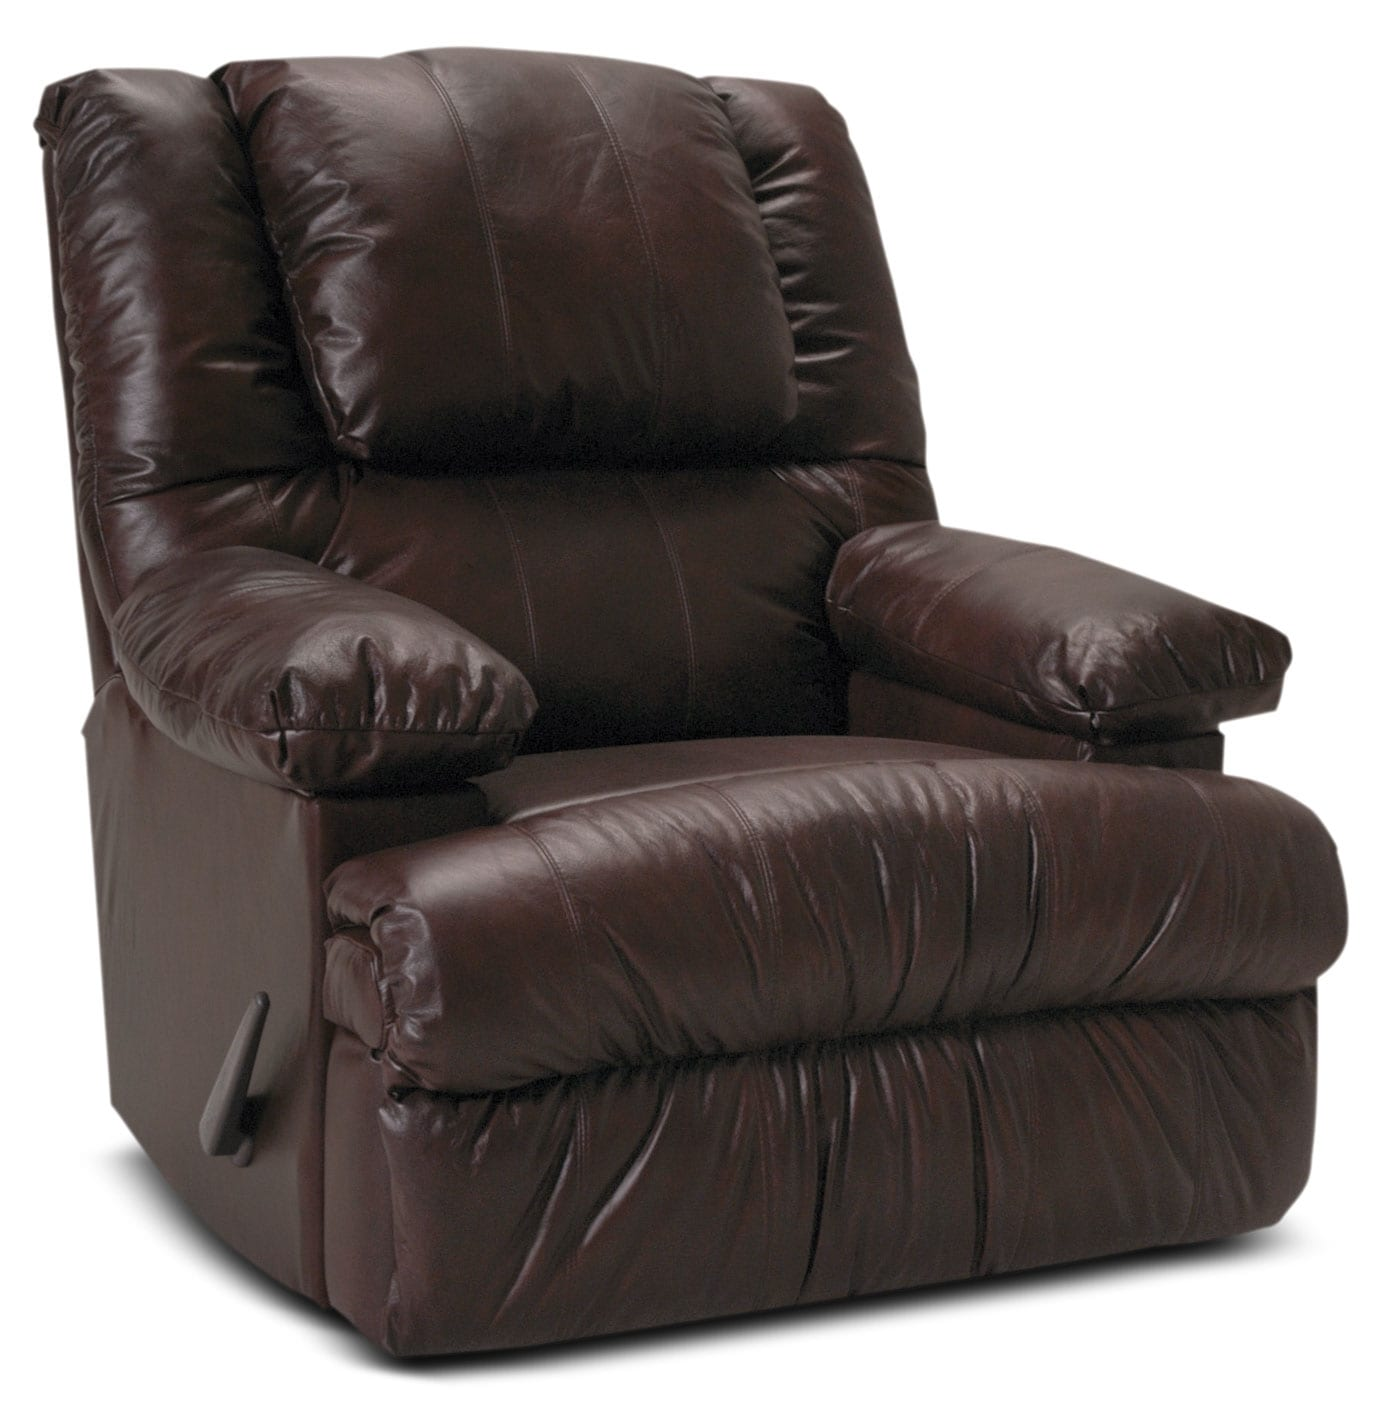 Designed2B Recliner 5598 Bonded Leather Rocker with Storage Arms- Java